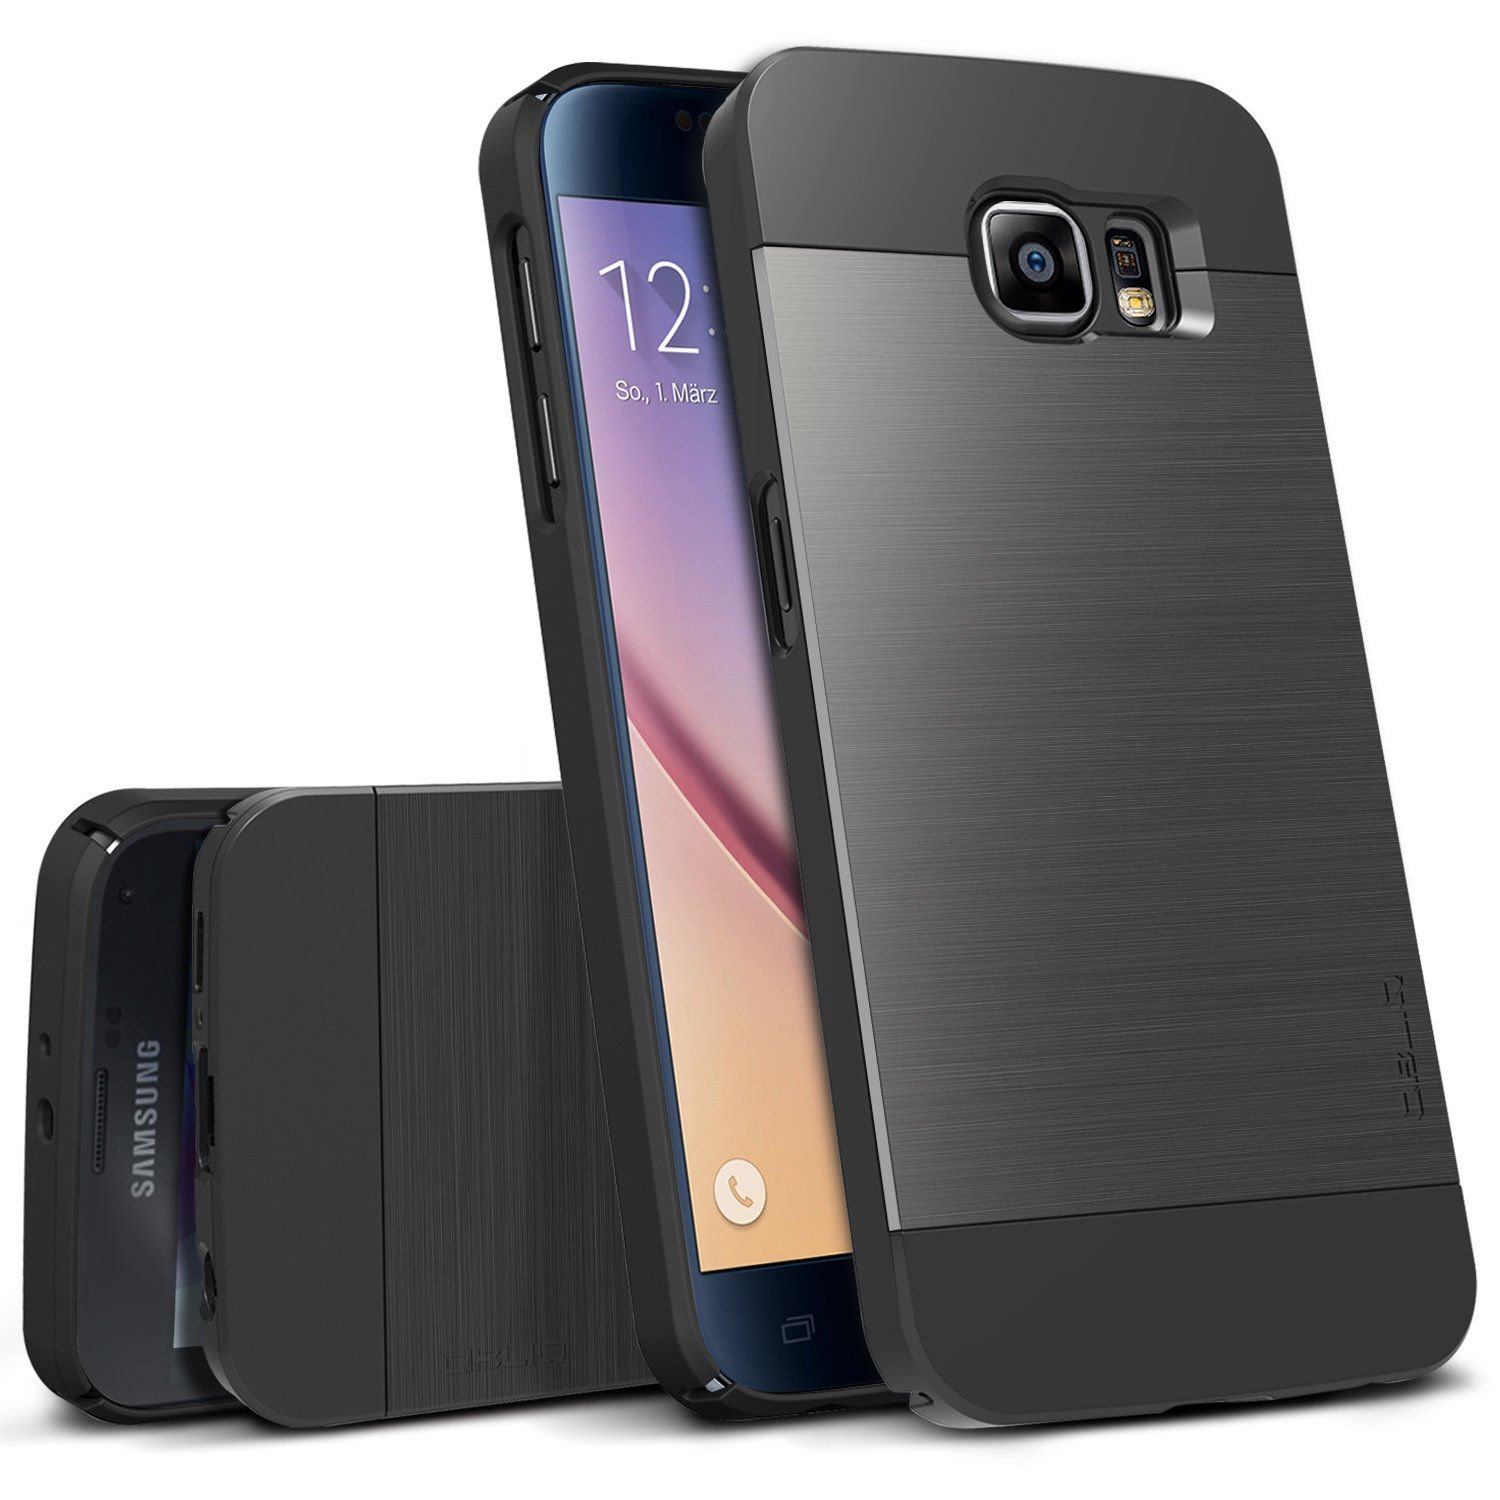 Slimmest Case Available For The S6 Samsung Galaxy S6